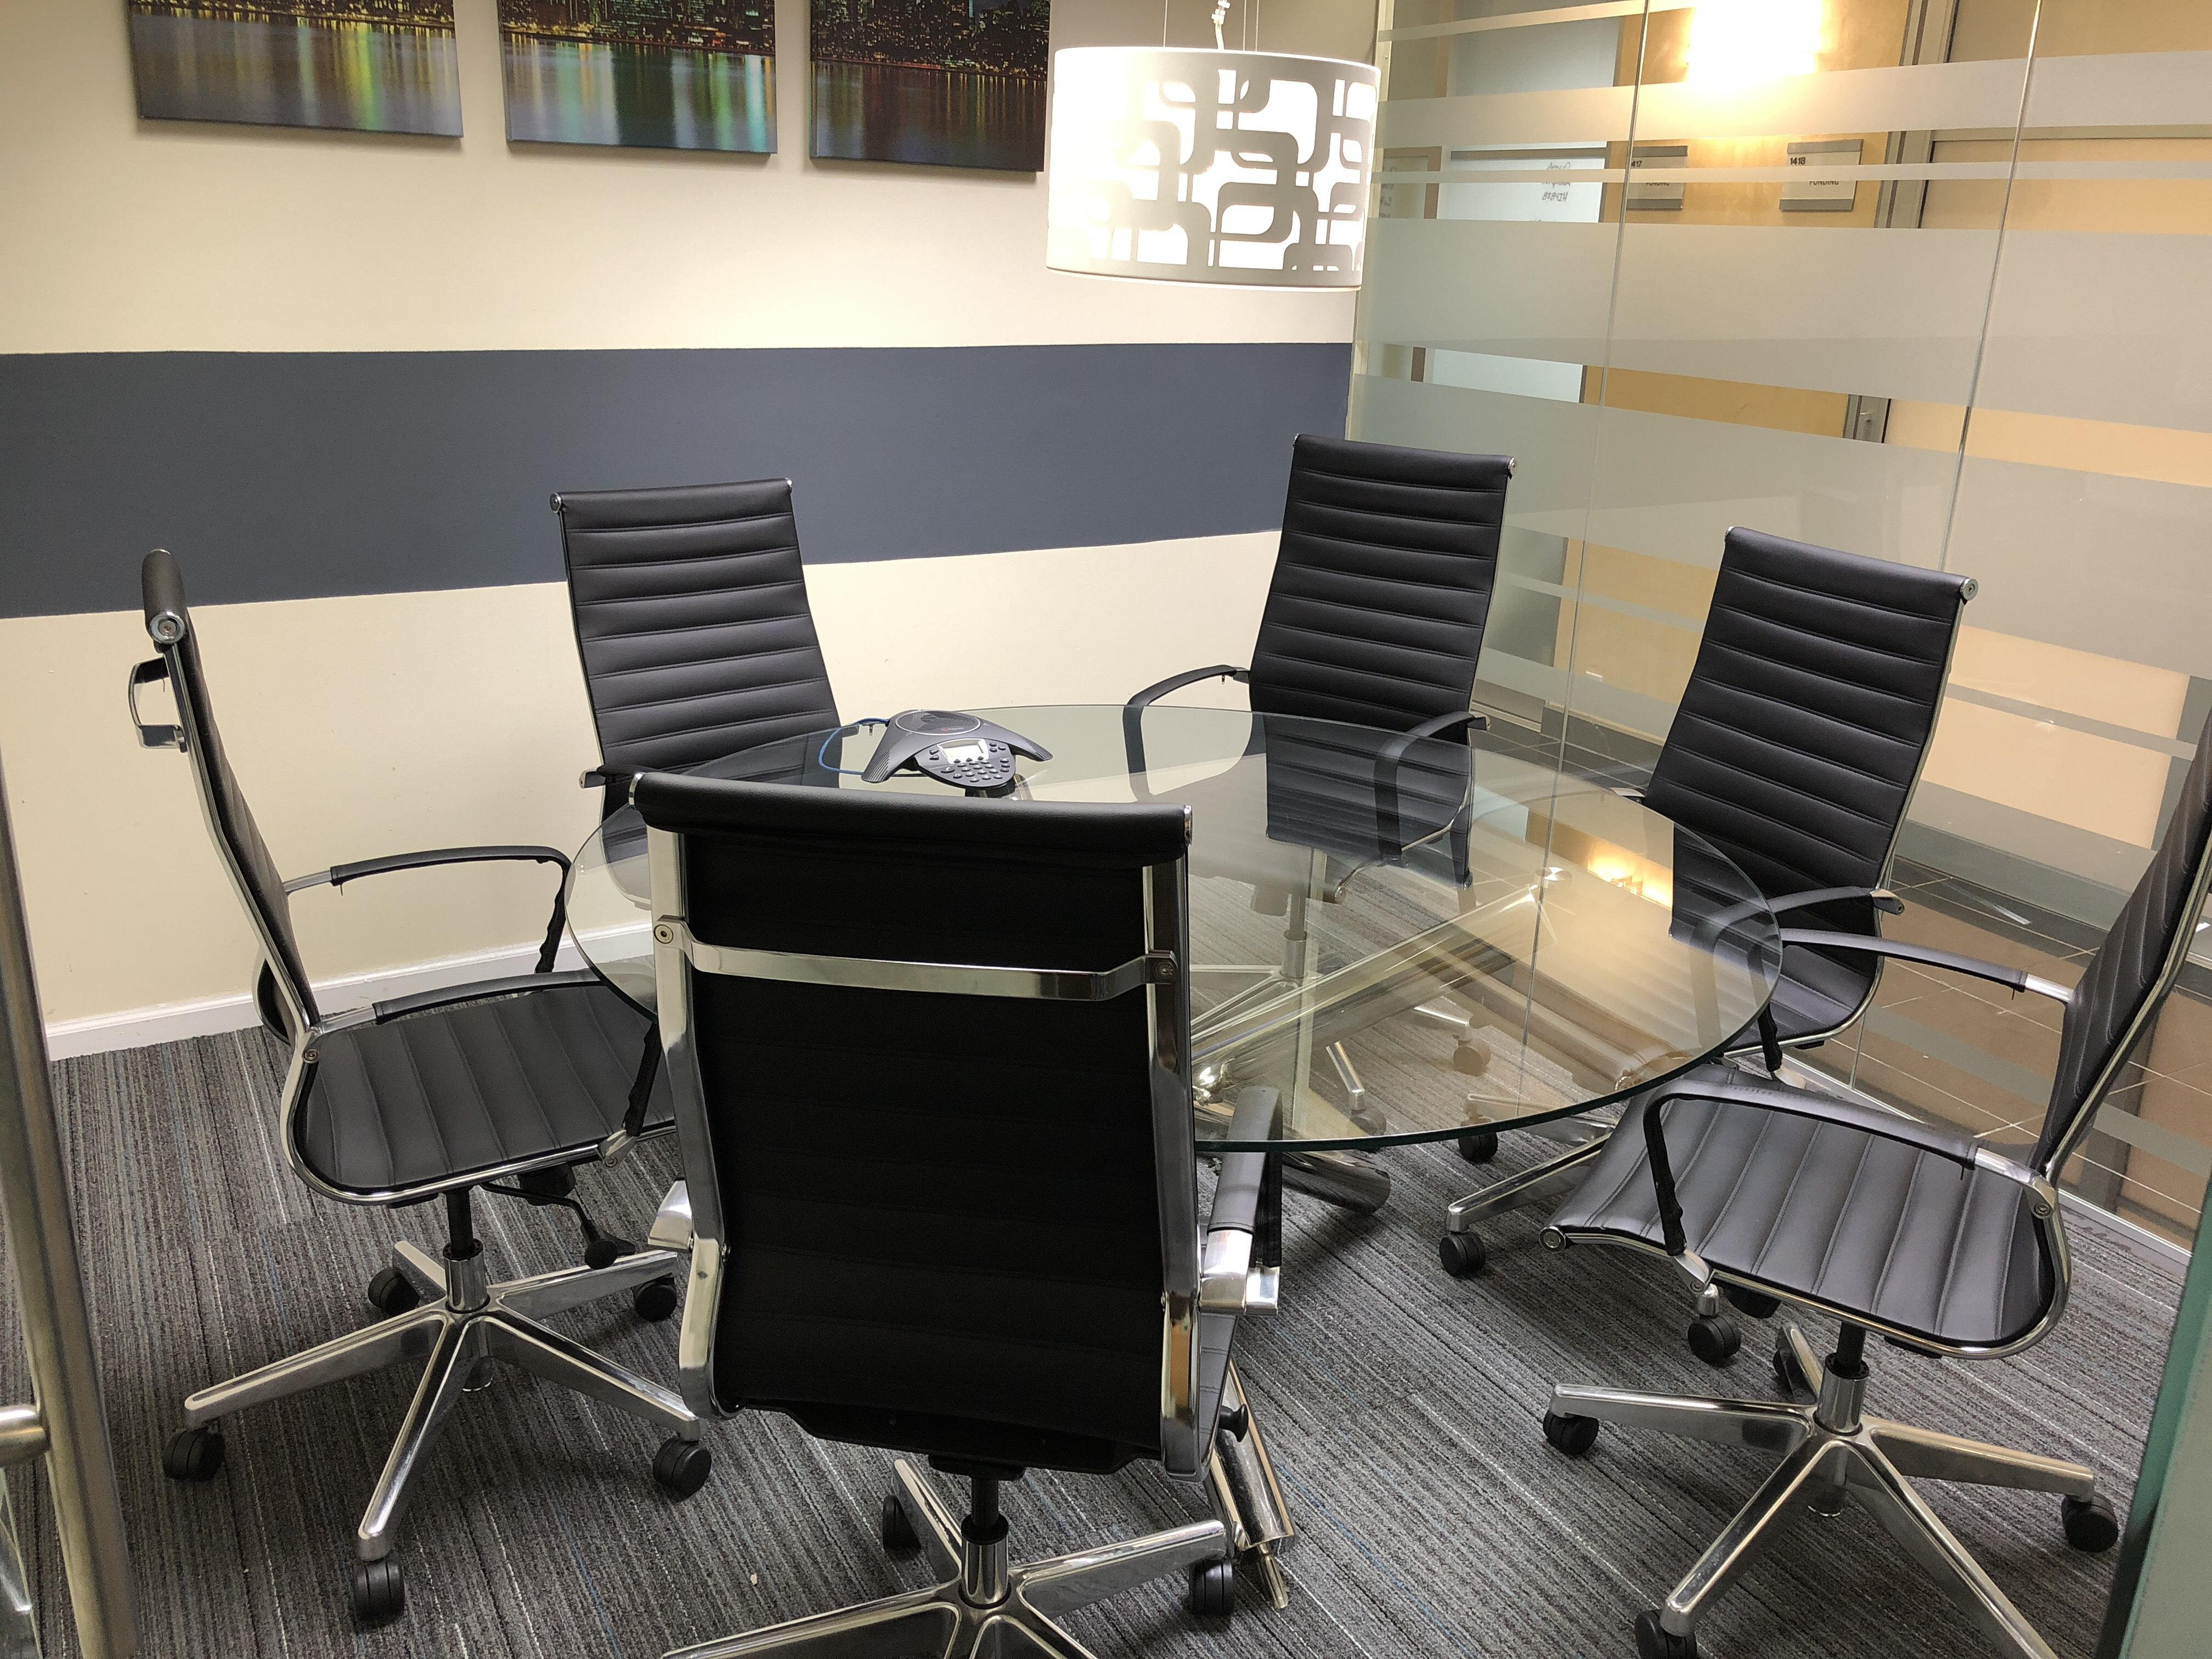 Jay Suites Financial District - Financial District Room B-50% PROMO